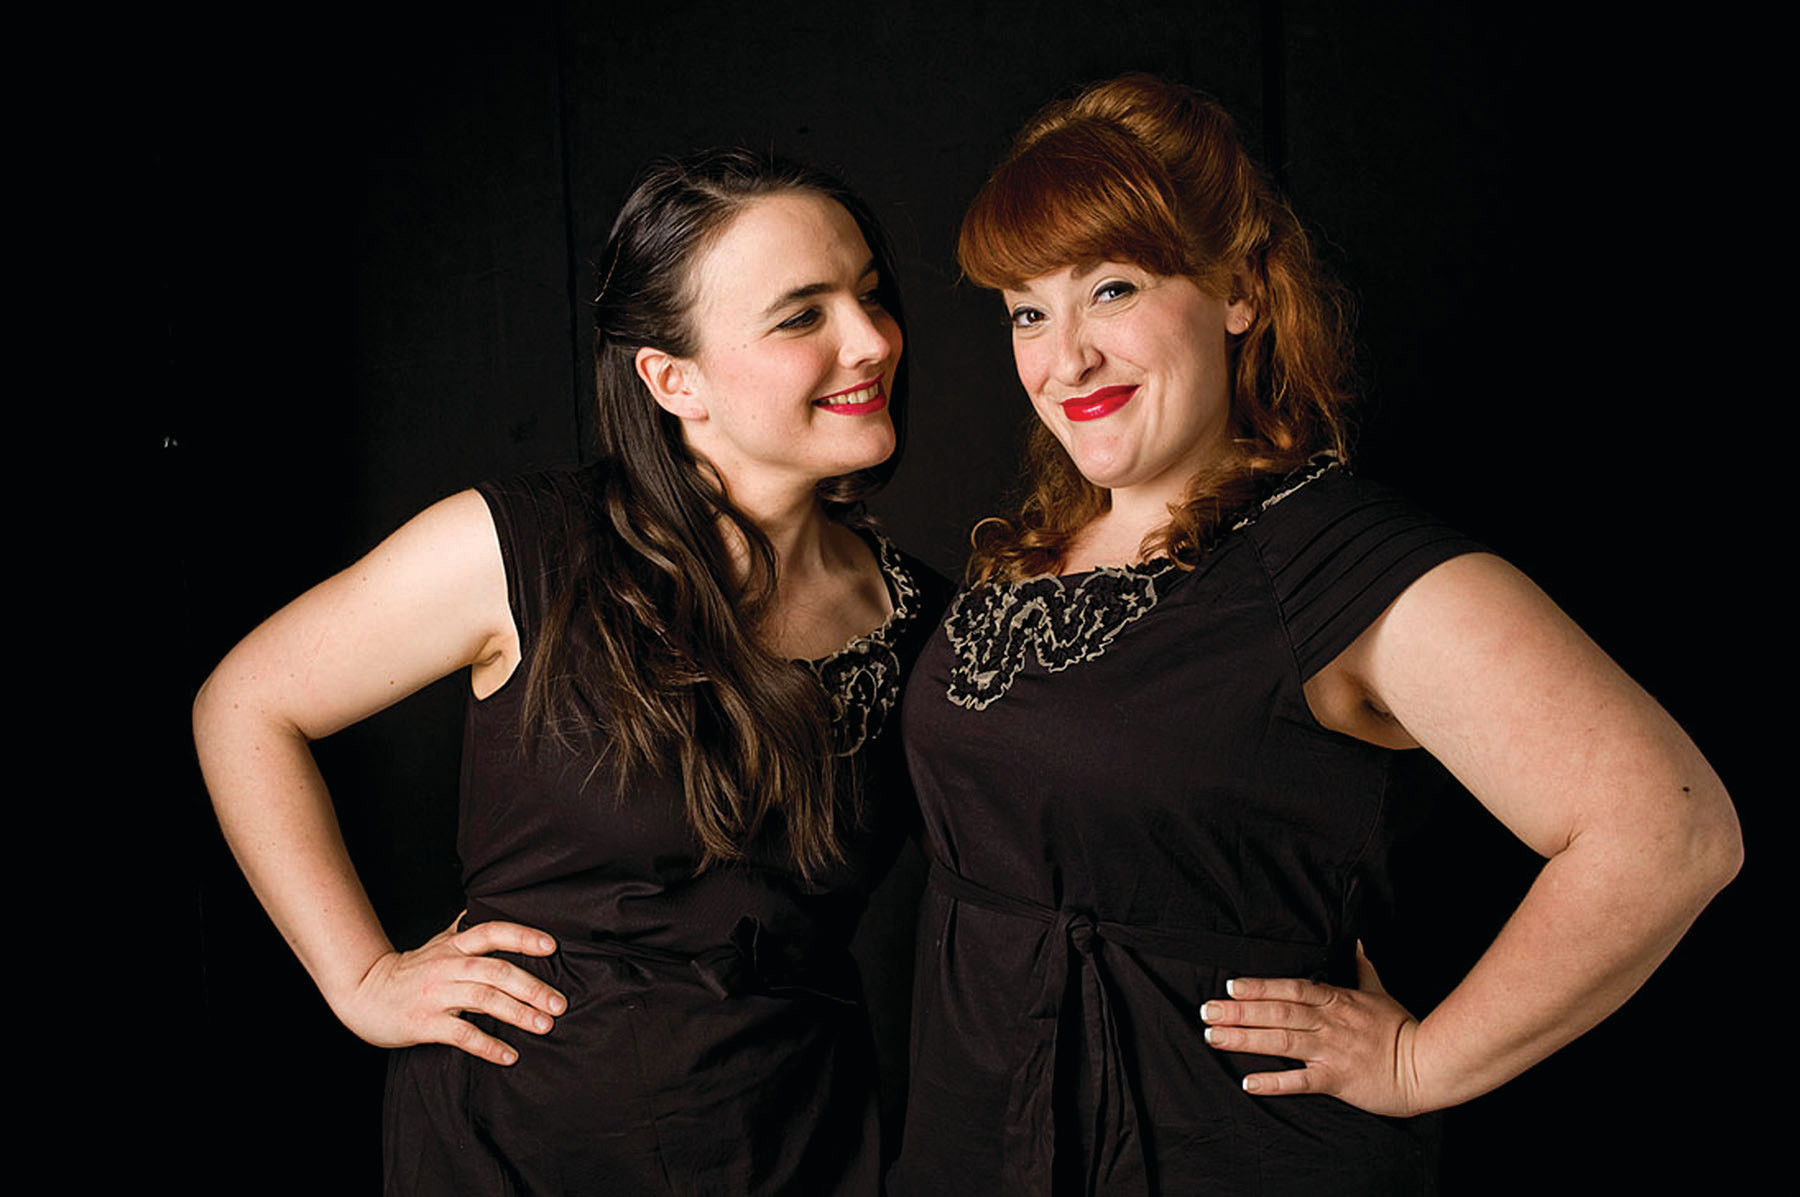 The Sweetback Sisters' Country Christmas Sing-Along Spectacular. Saturday, December 16, 2017 at 8pm. Common Fence Point Hall, 933 Anthony Road, Portsmouth, RI. Tickets $22 in advance, $25 at the door.